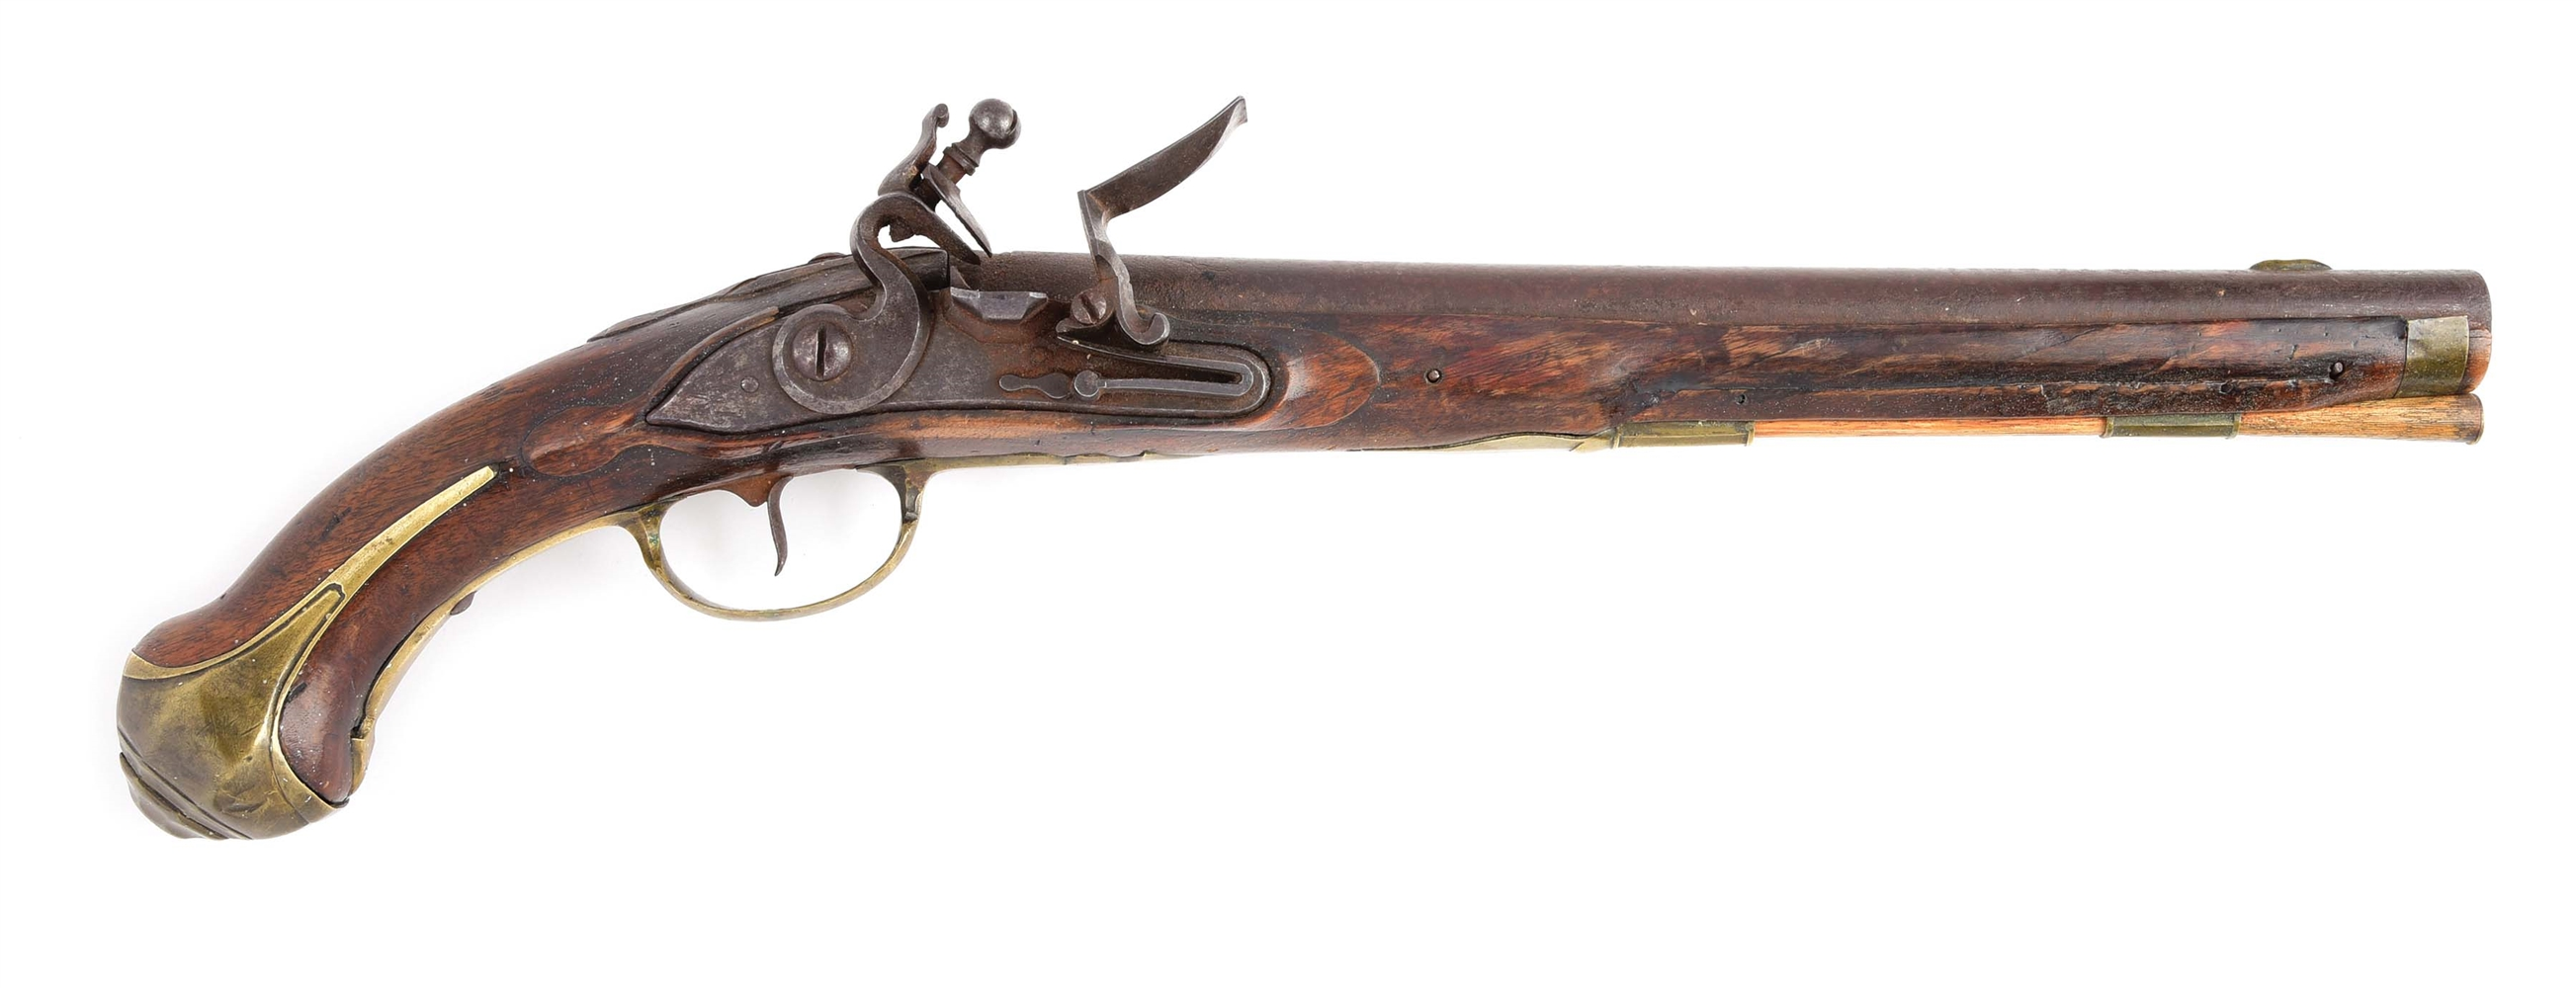 "(A) RARE & IMPORTANT HESSIAN FLINTLOCK CAVALRY PISTOL WITH DOUBLE ""WL"" CYPHER OF WILHELM LANGRAVE."